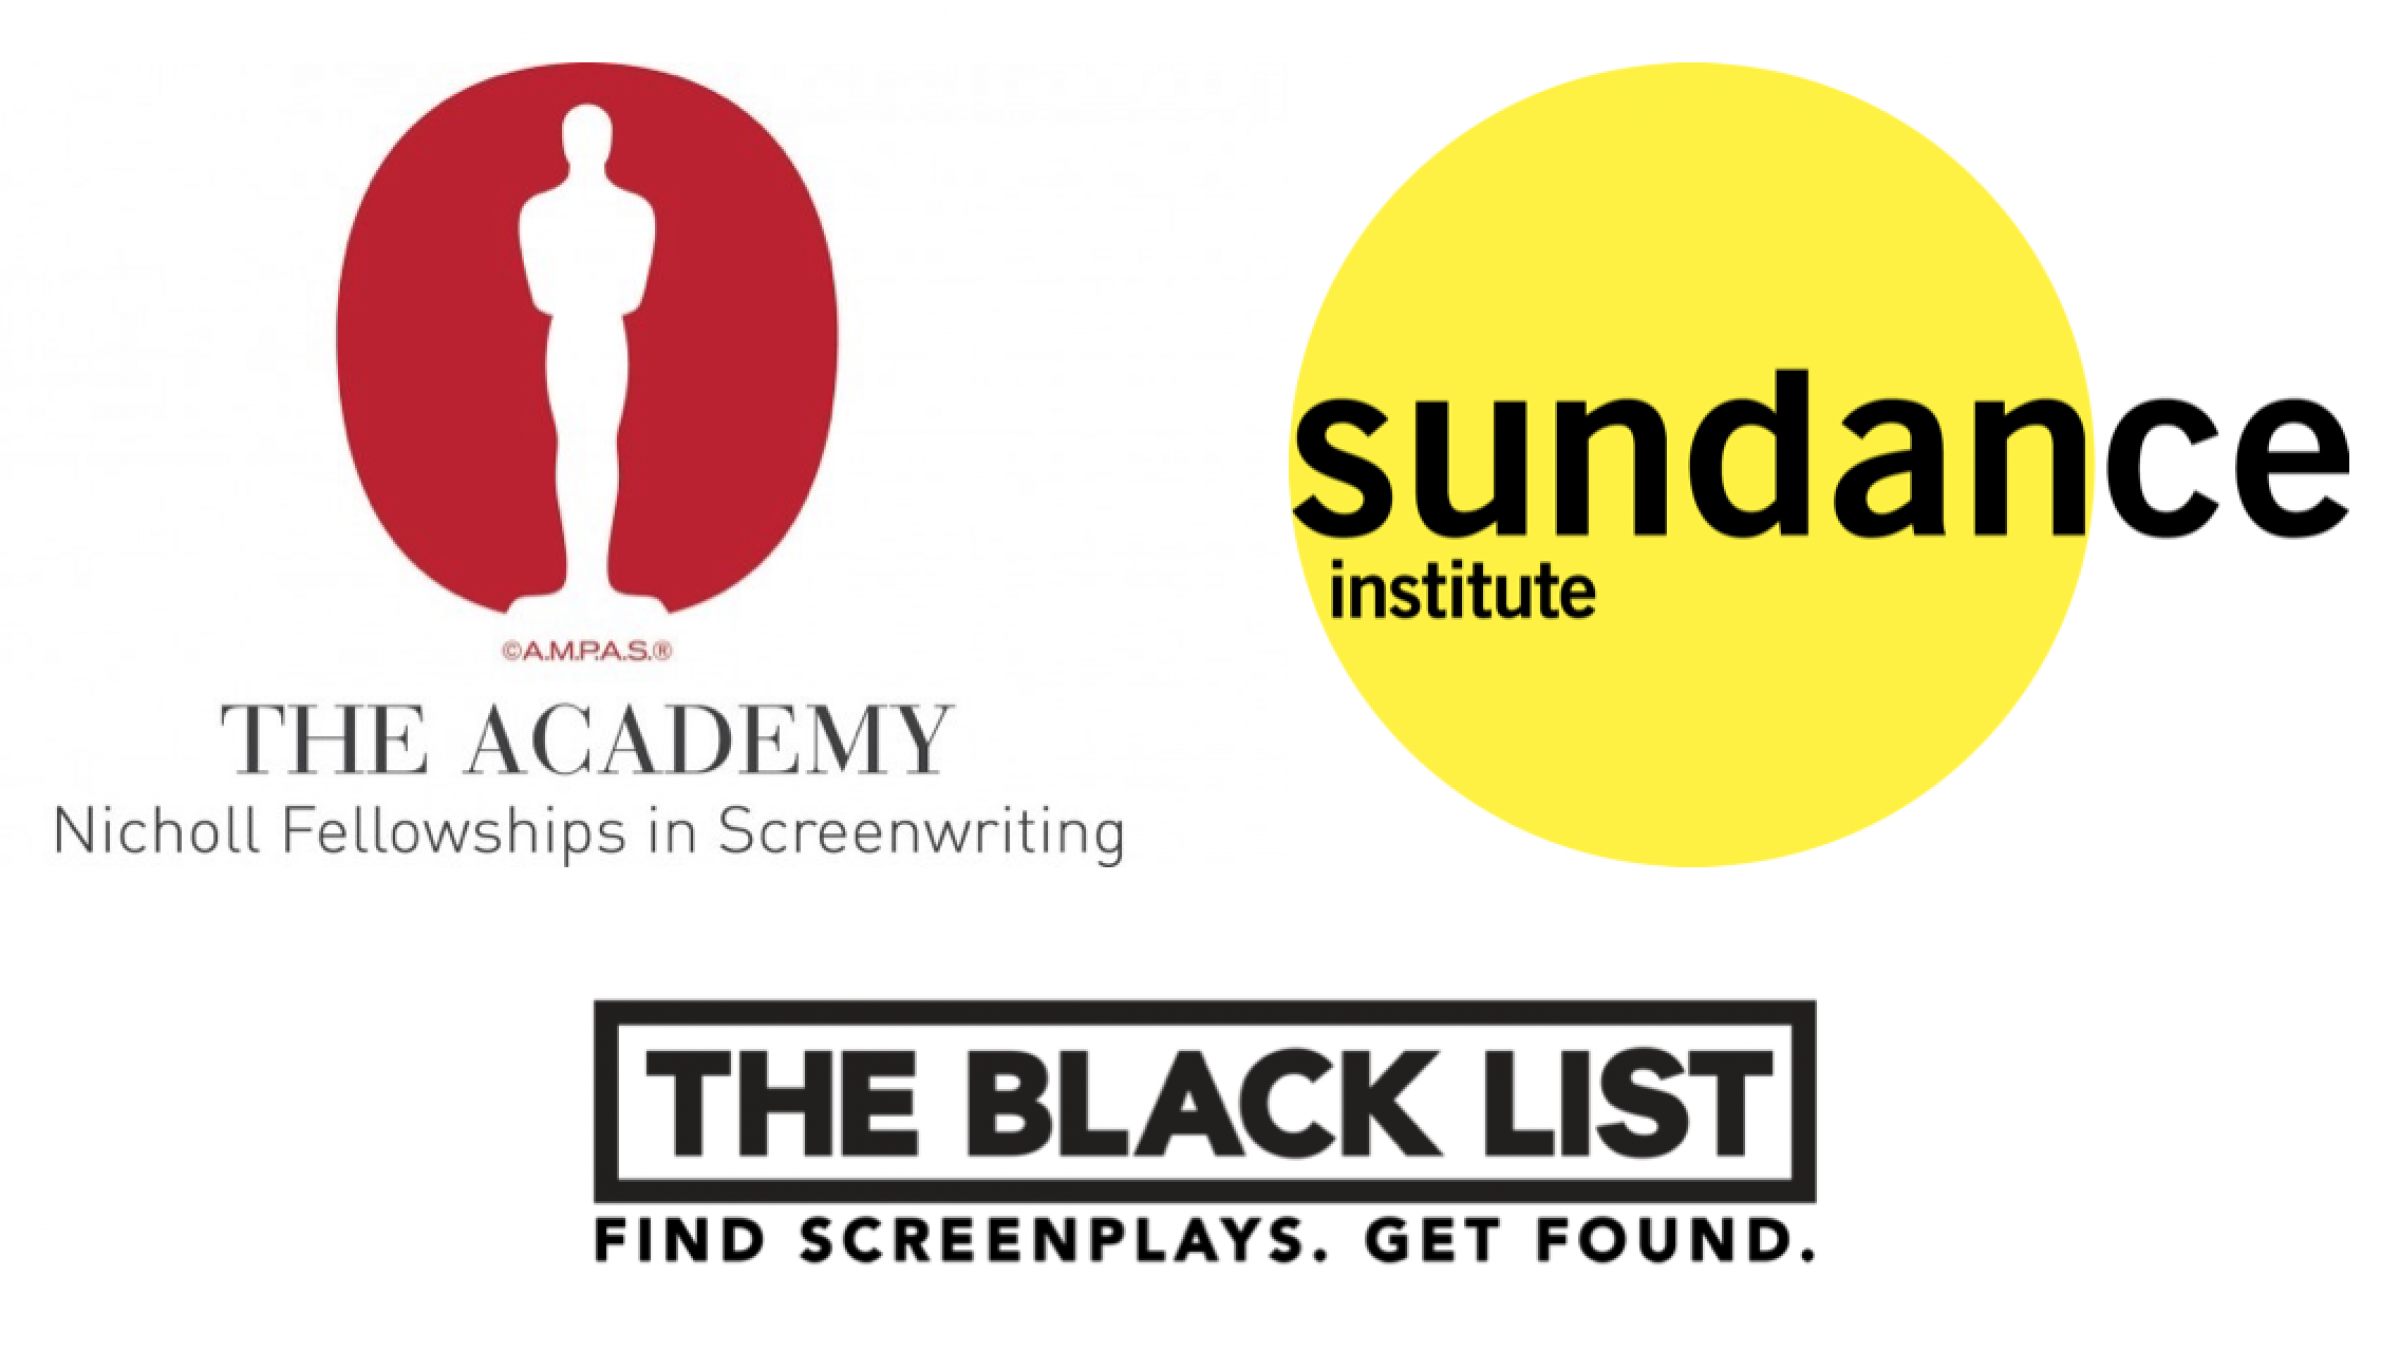 Screenwriting fellowships